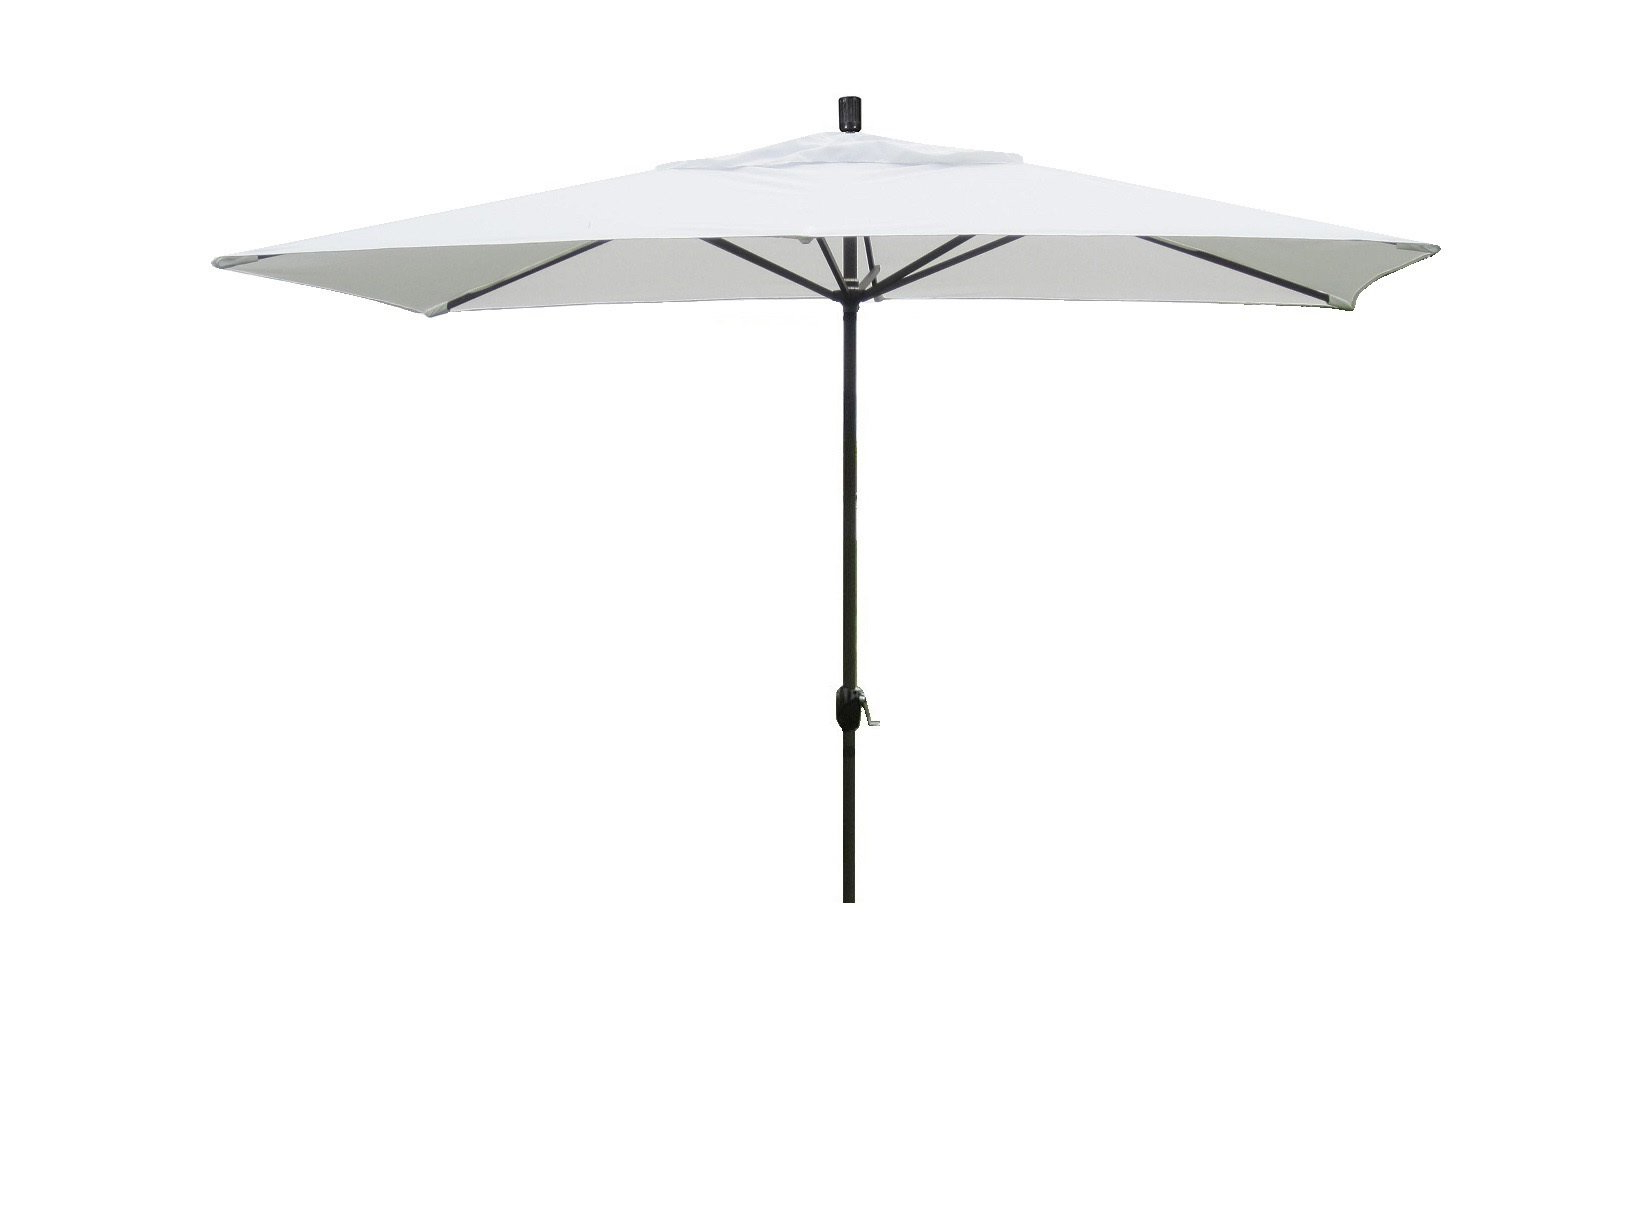 Northfleet 10' X 6' Rectangular Market Umbrella For Recent Sherlyn Rectangular Market Umbrellas (View 5 of 20)